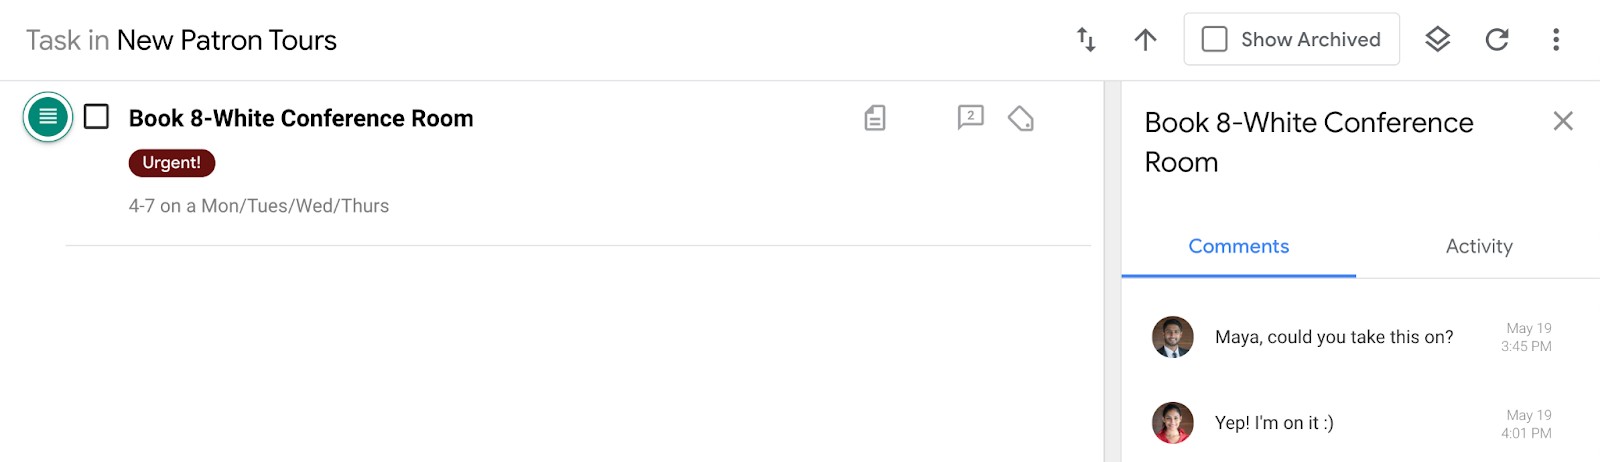 Comment added to task after replying to email notification